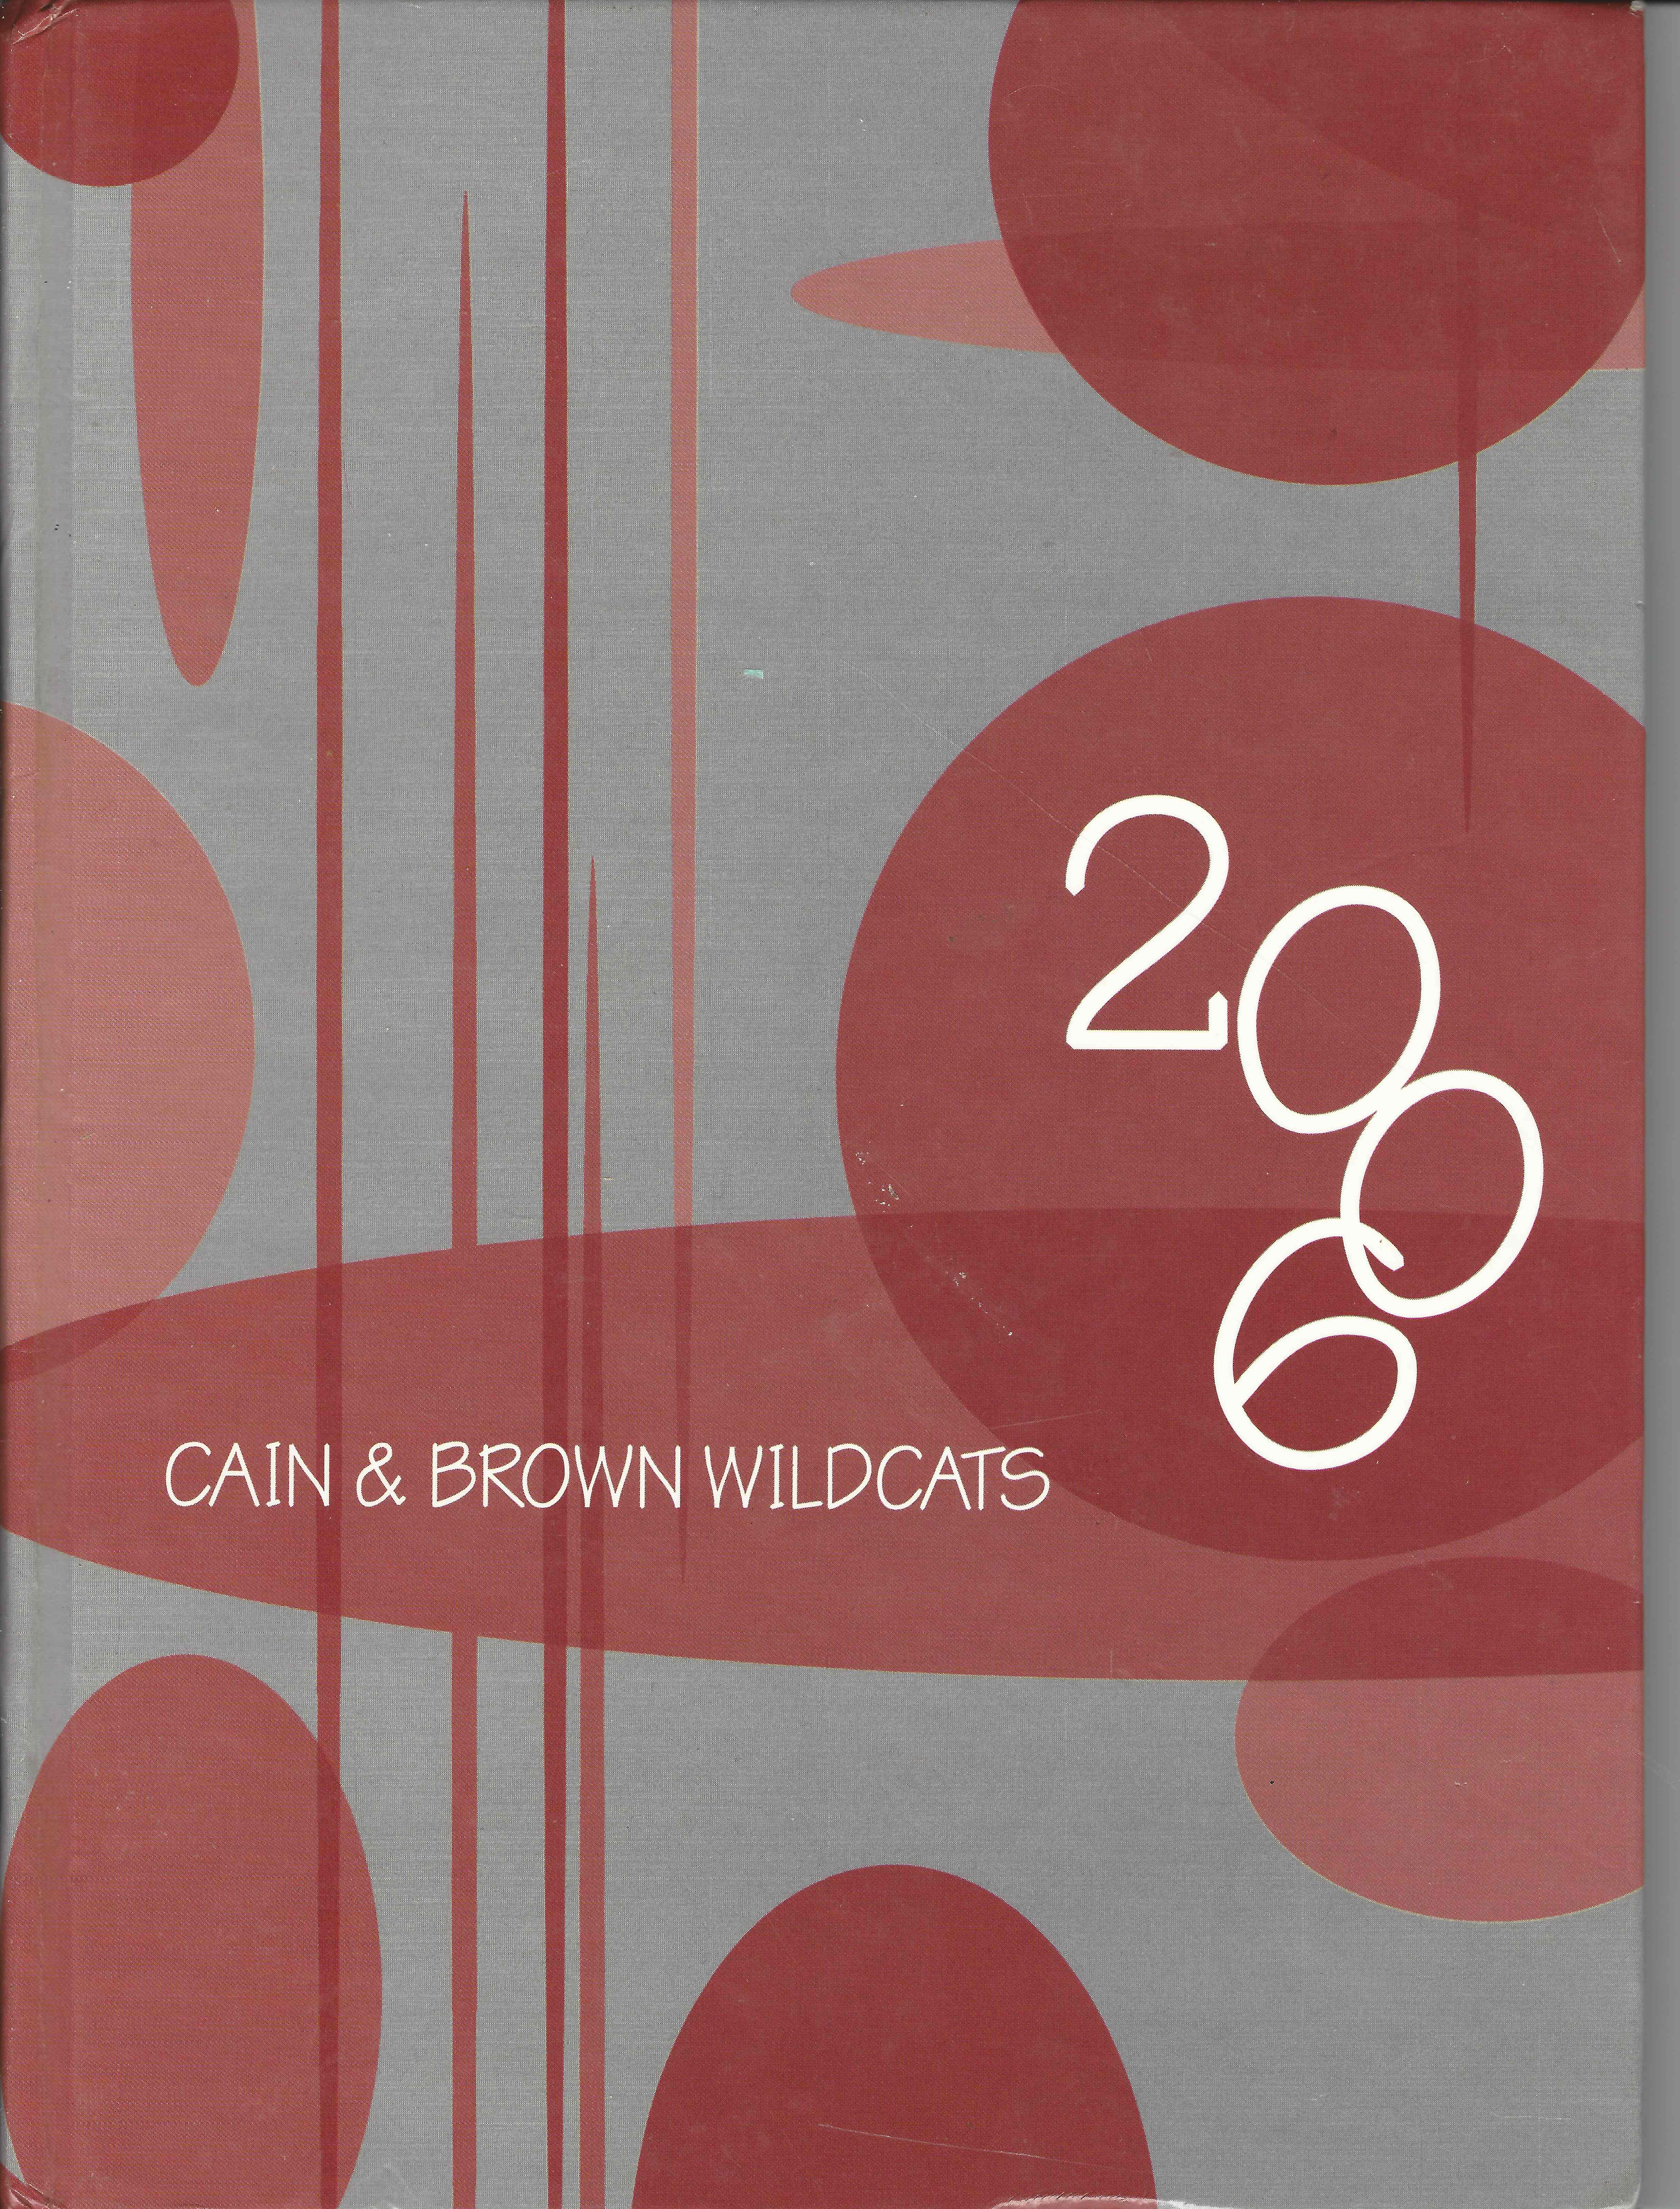 2006 Yearbook of Cain & Brown Elementary Schools, Whitehouse, Smith County, Texas.